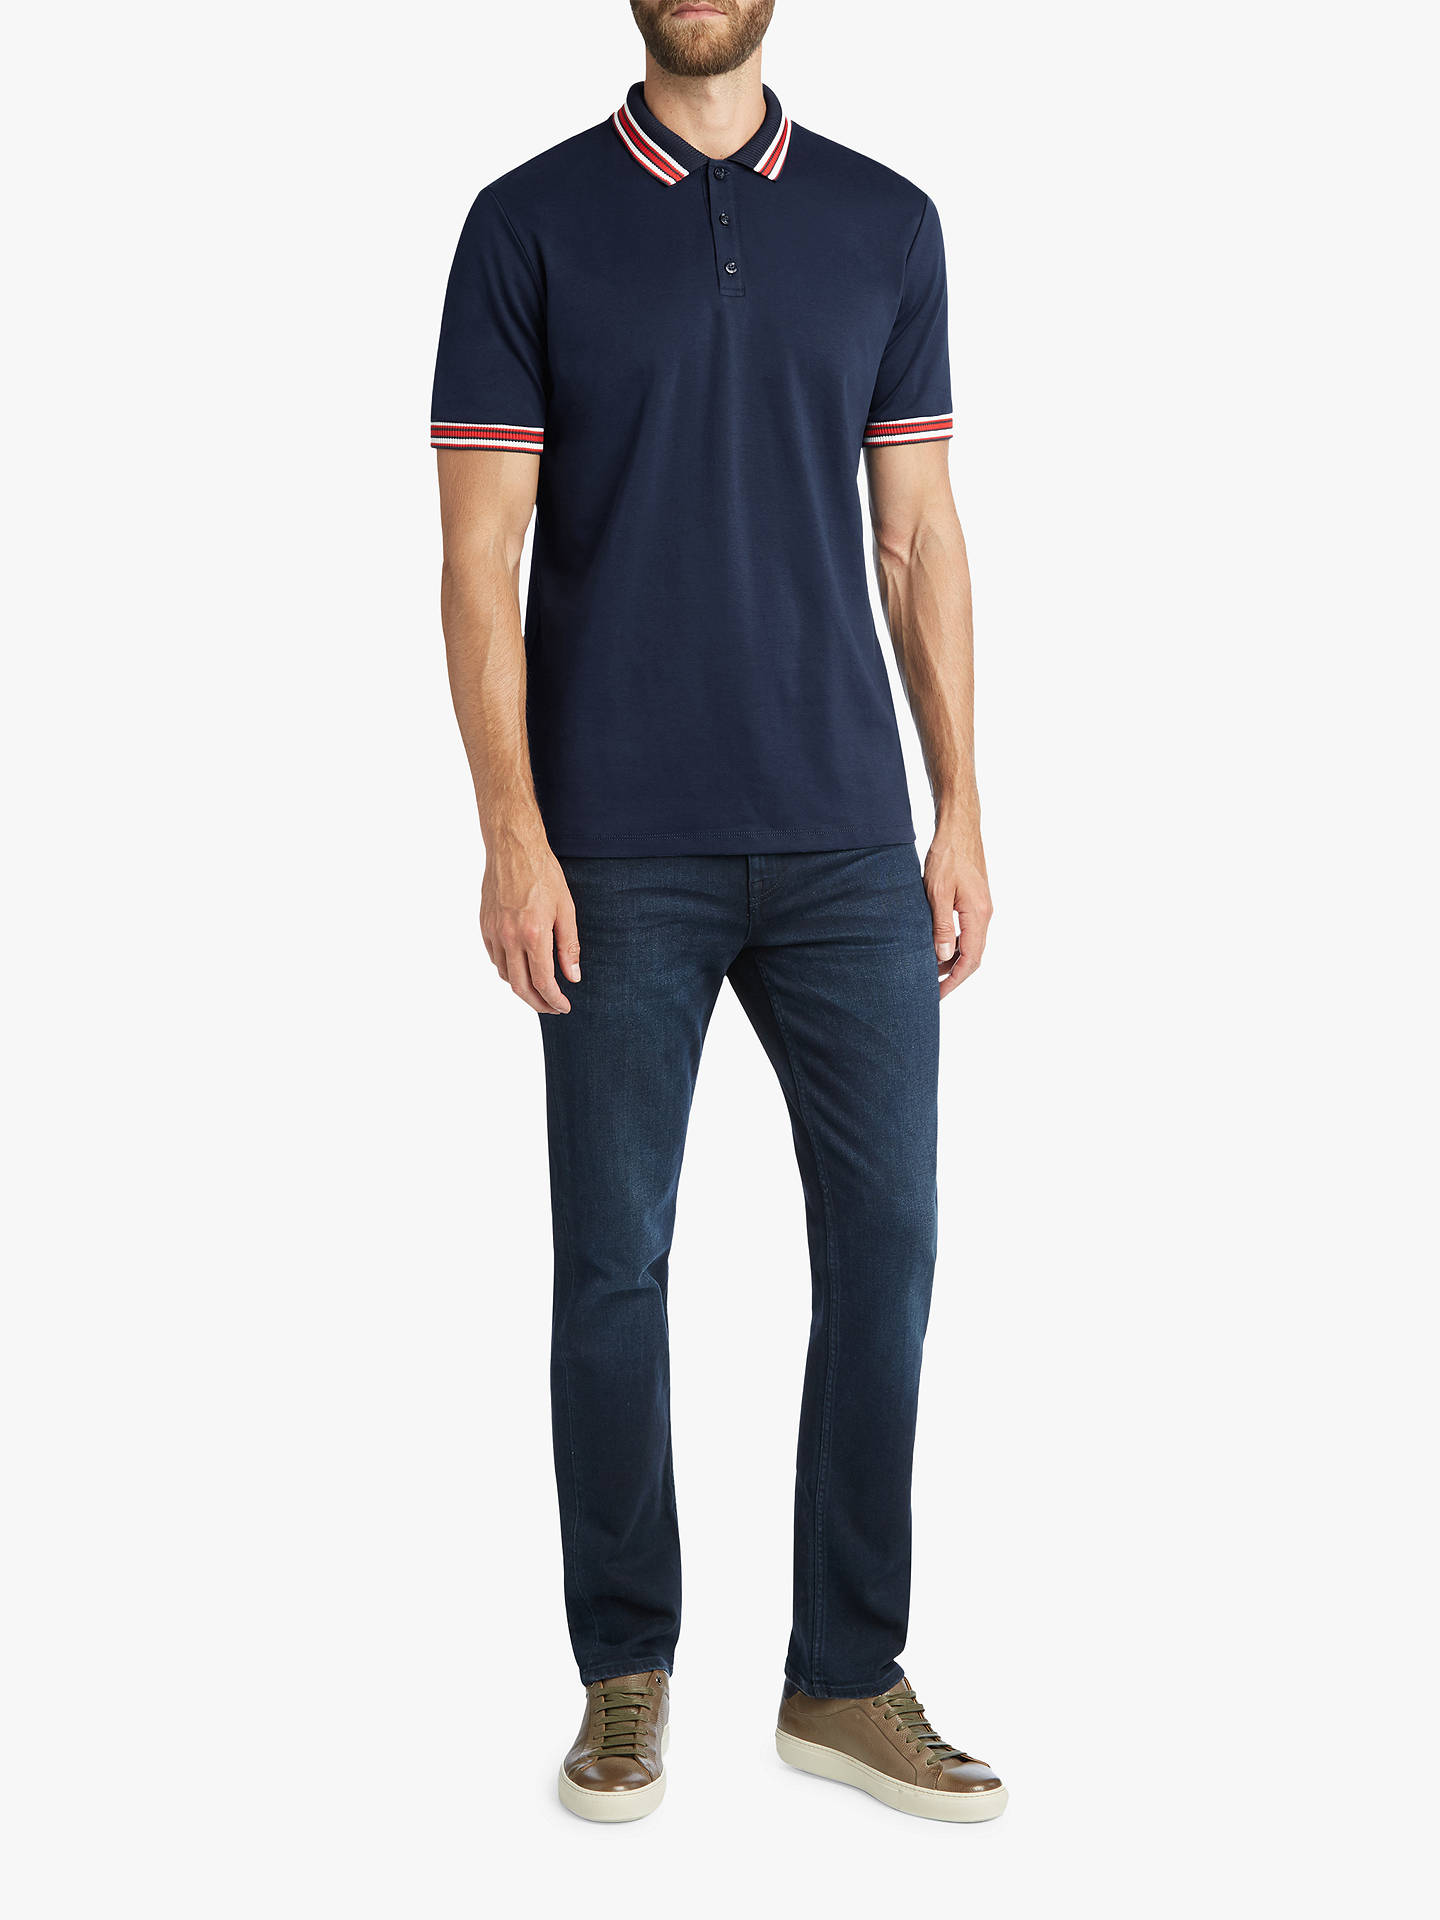 1bd9632b3 ... Buy HUGO by Hugo Boss Dancroft Tipping Stripes Polo Shirt, Navy, S  Online at ...